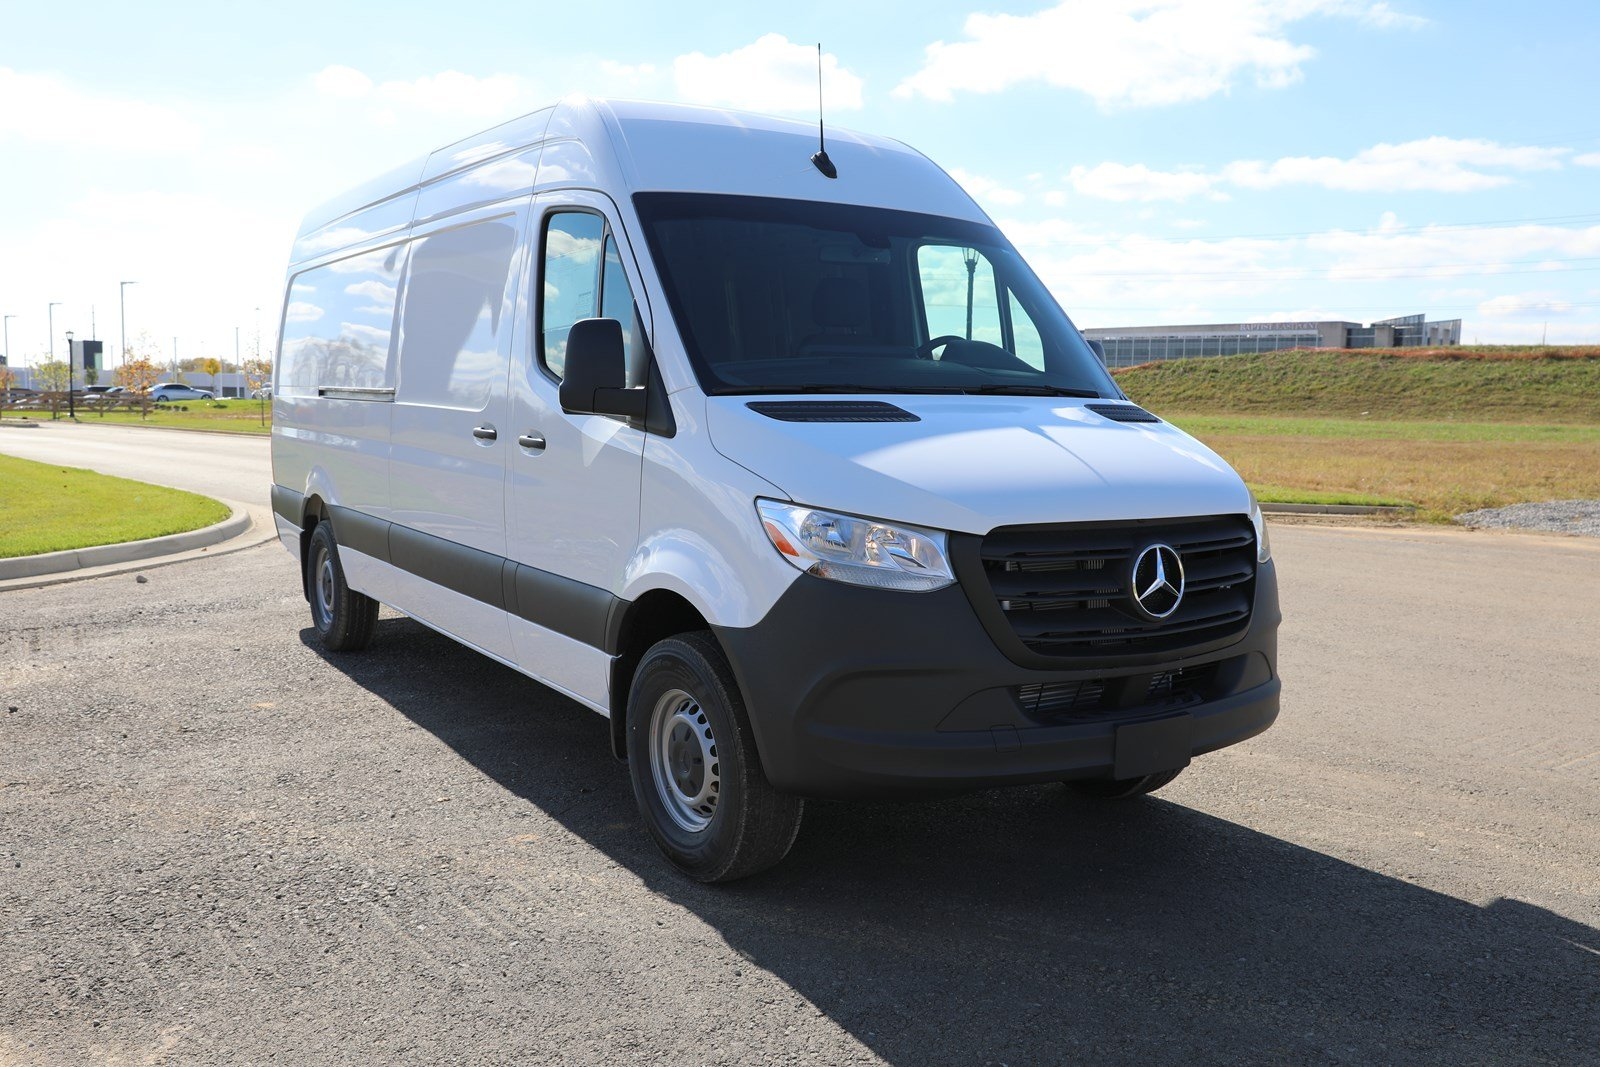 New 2019 Mercedes-Benz Sprinter Cargo Van 144 WB SR